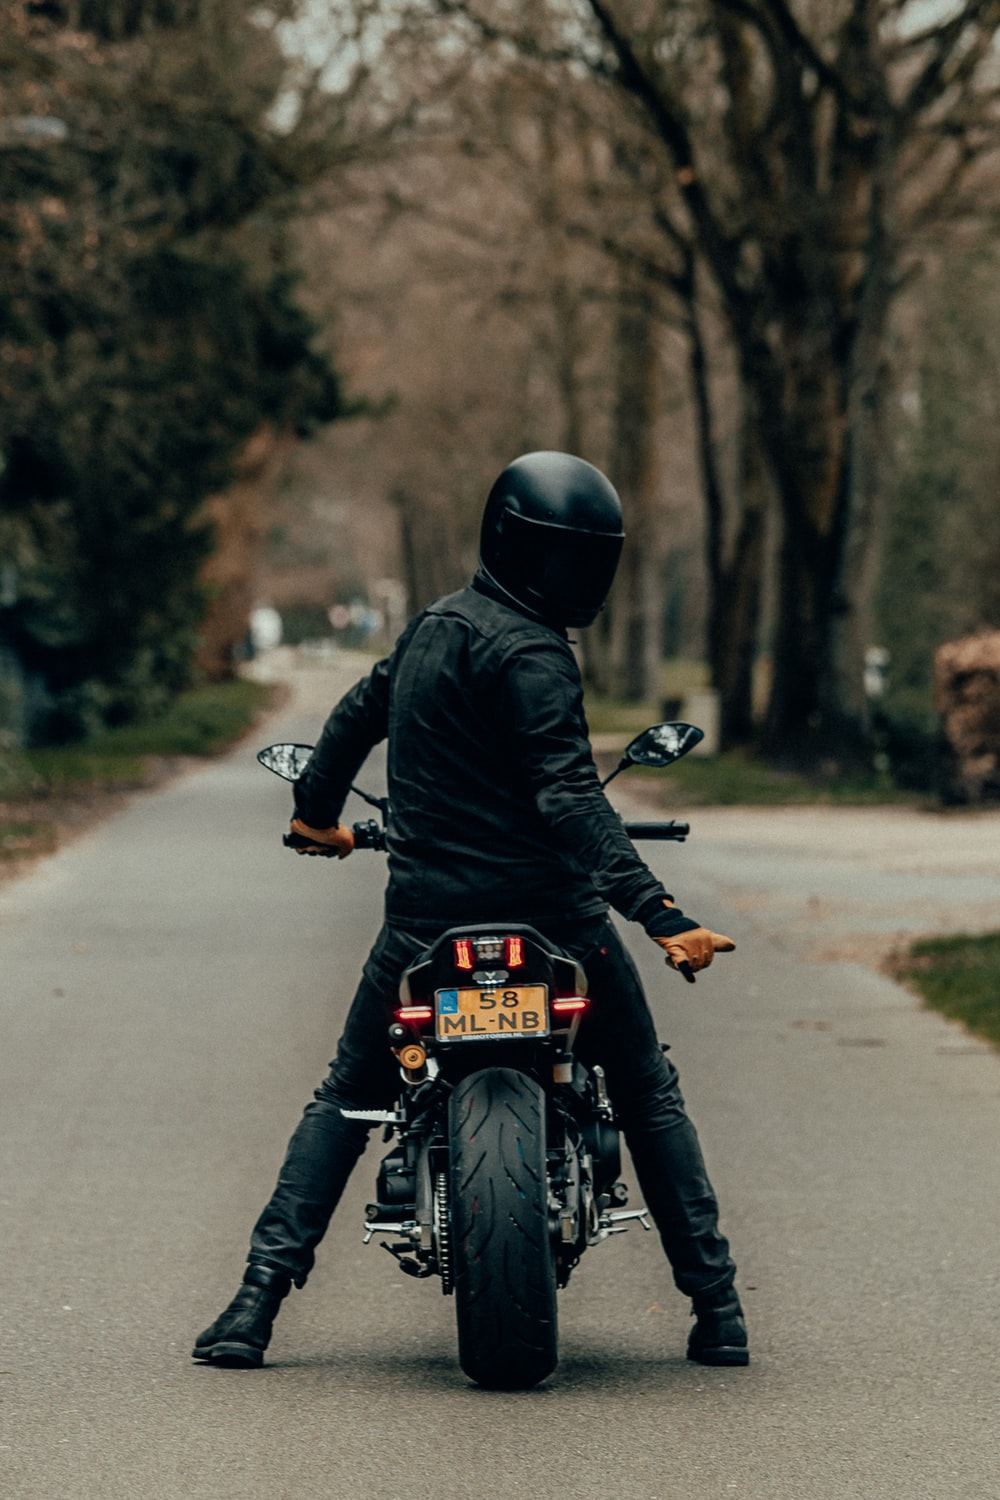 man in black leather jacket riding motorcycle on road during daytime